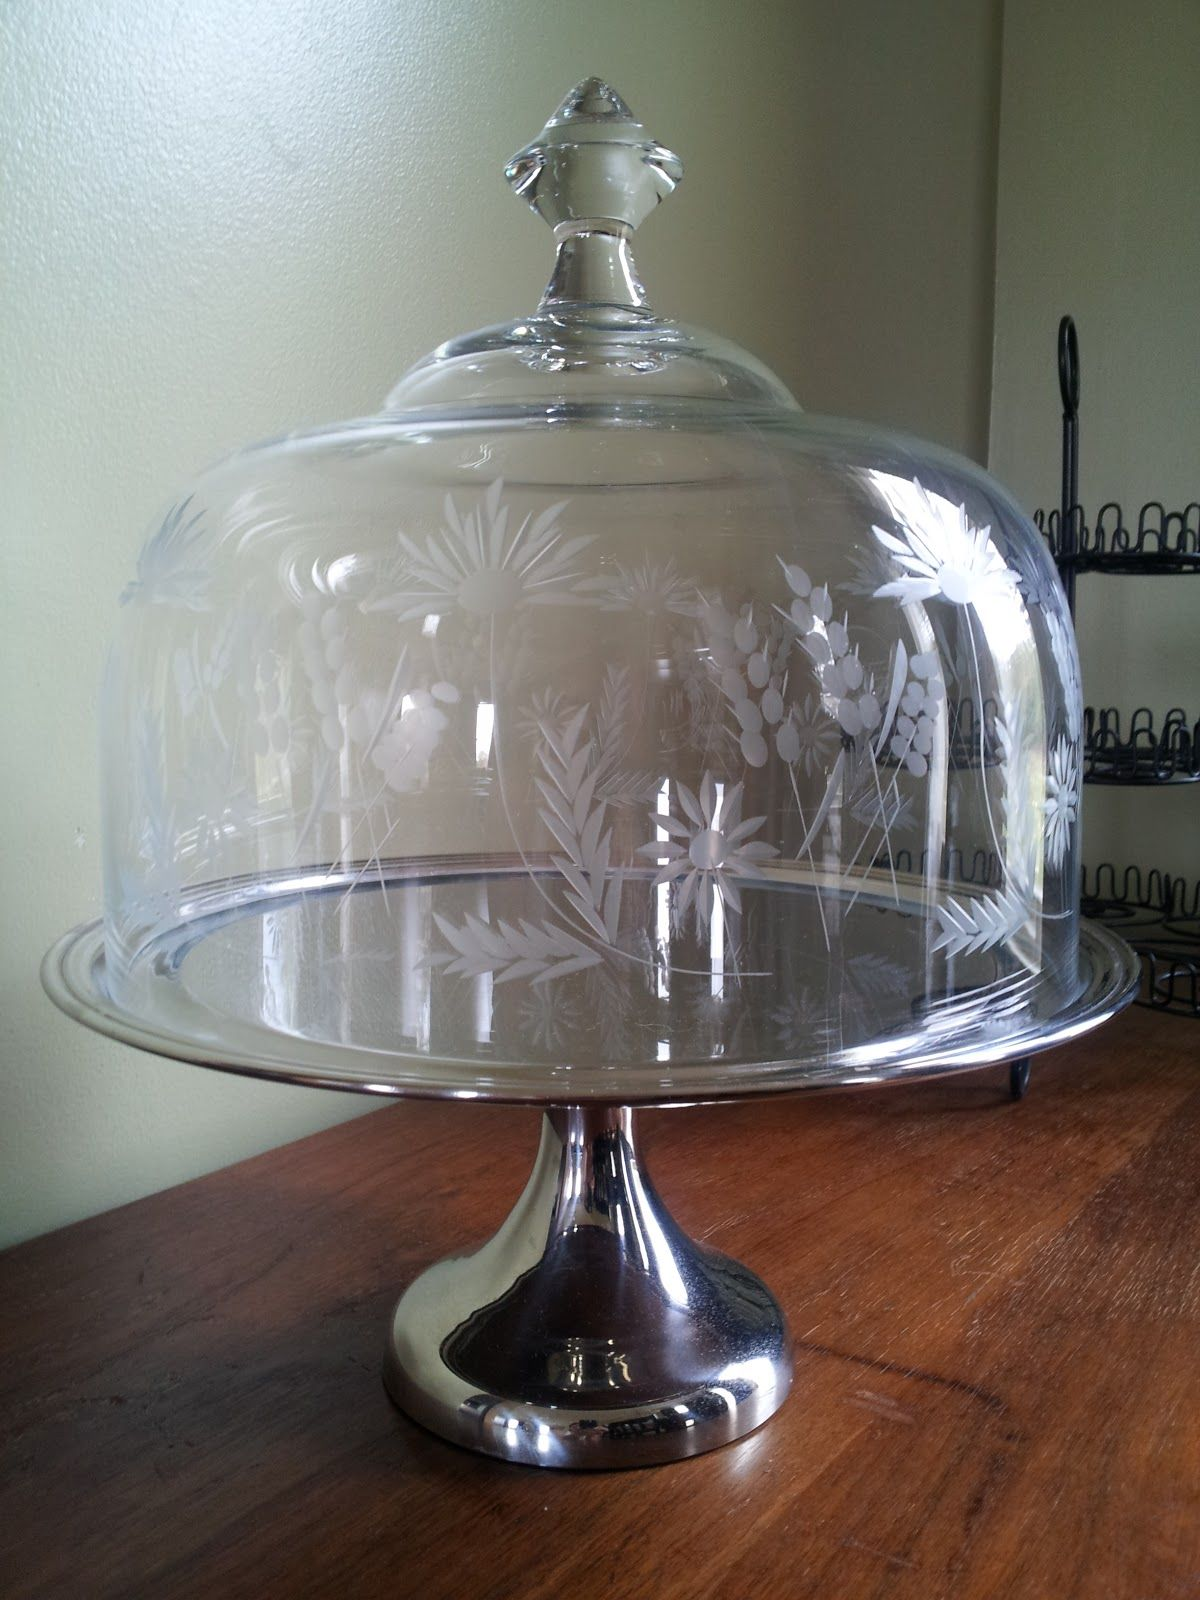 Glass Cake Stand Dome Cover Crystal Dome Stainless Steel Cake